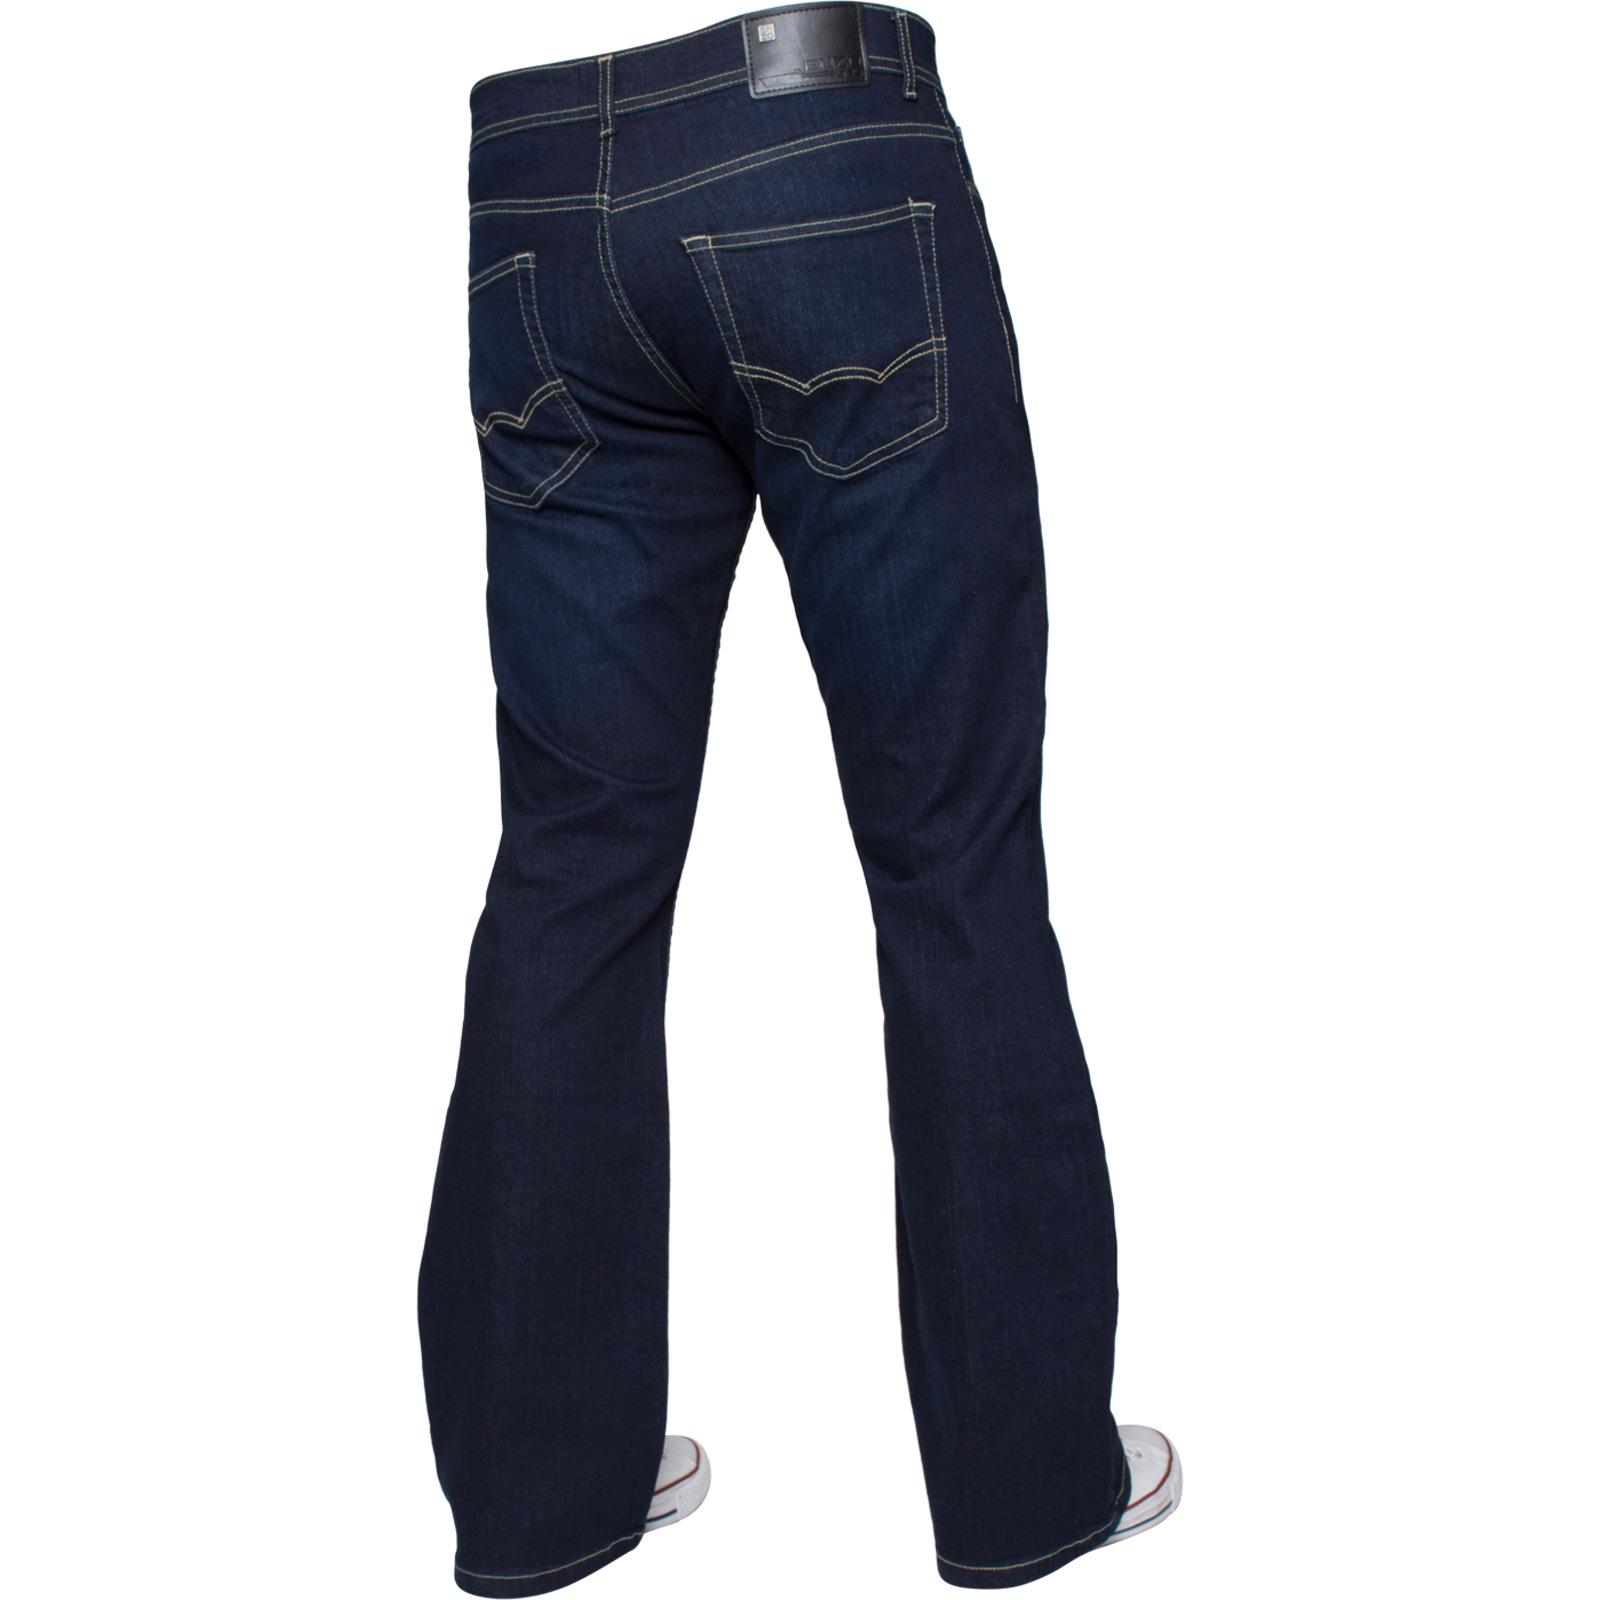 Enzo-Mens-Jeans-Big-Tall-Leg-King-Size-Denim-Pants-Chino-Trousers-Waist-44-034-60-034 miniature 93